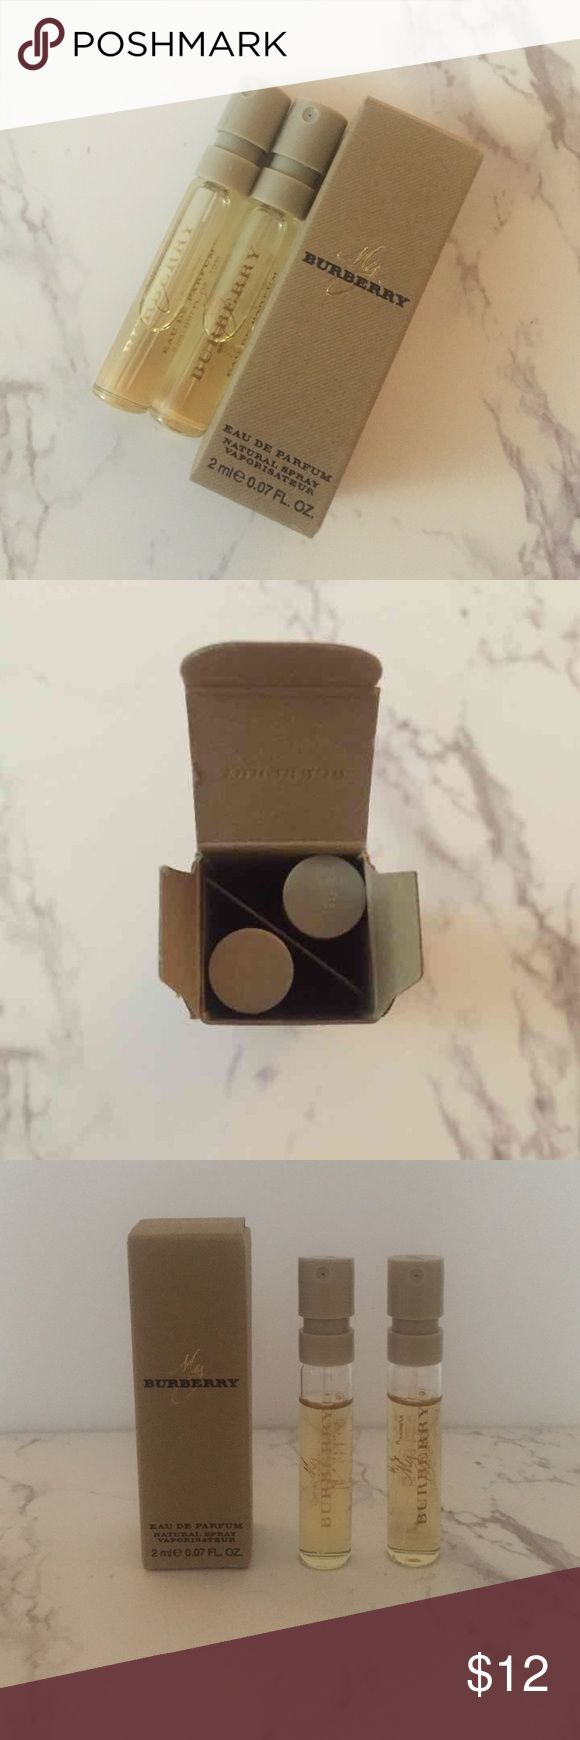 My Burberry Perfume 2 TESTER SIZES  0.07 fl oz each  Never Used  Price Is Firm  No Trades Sephora Makeup